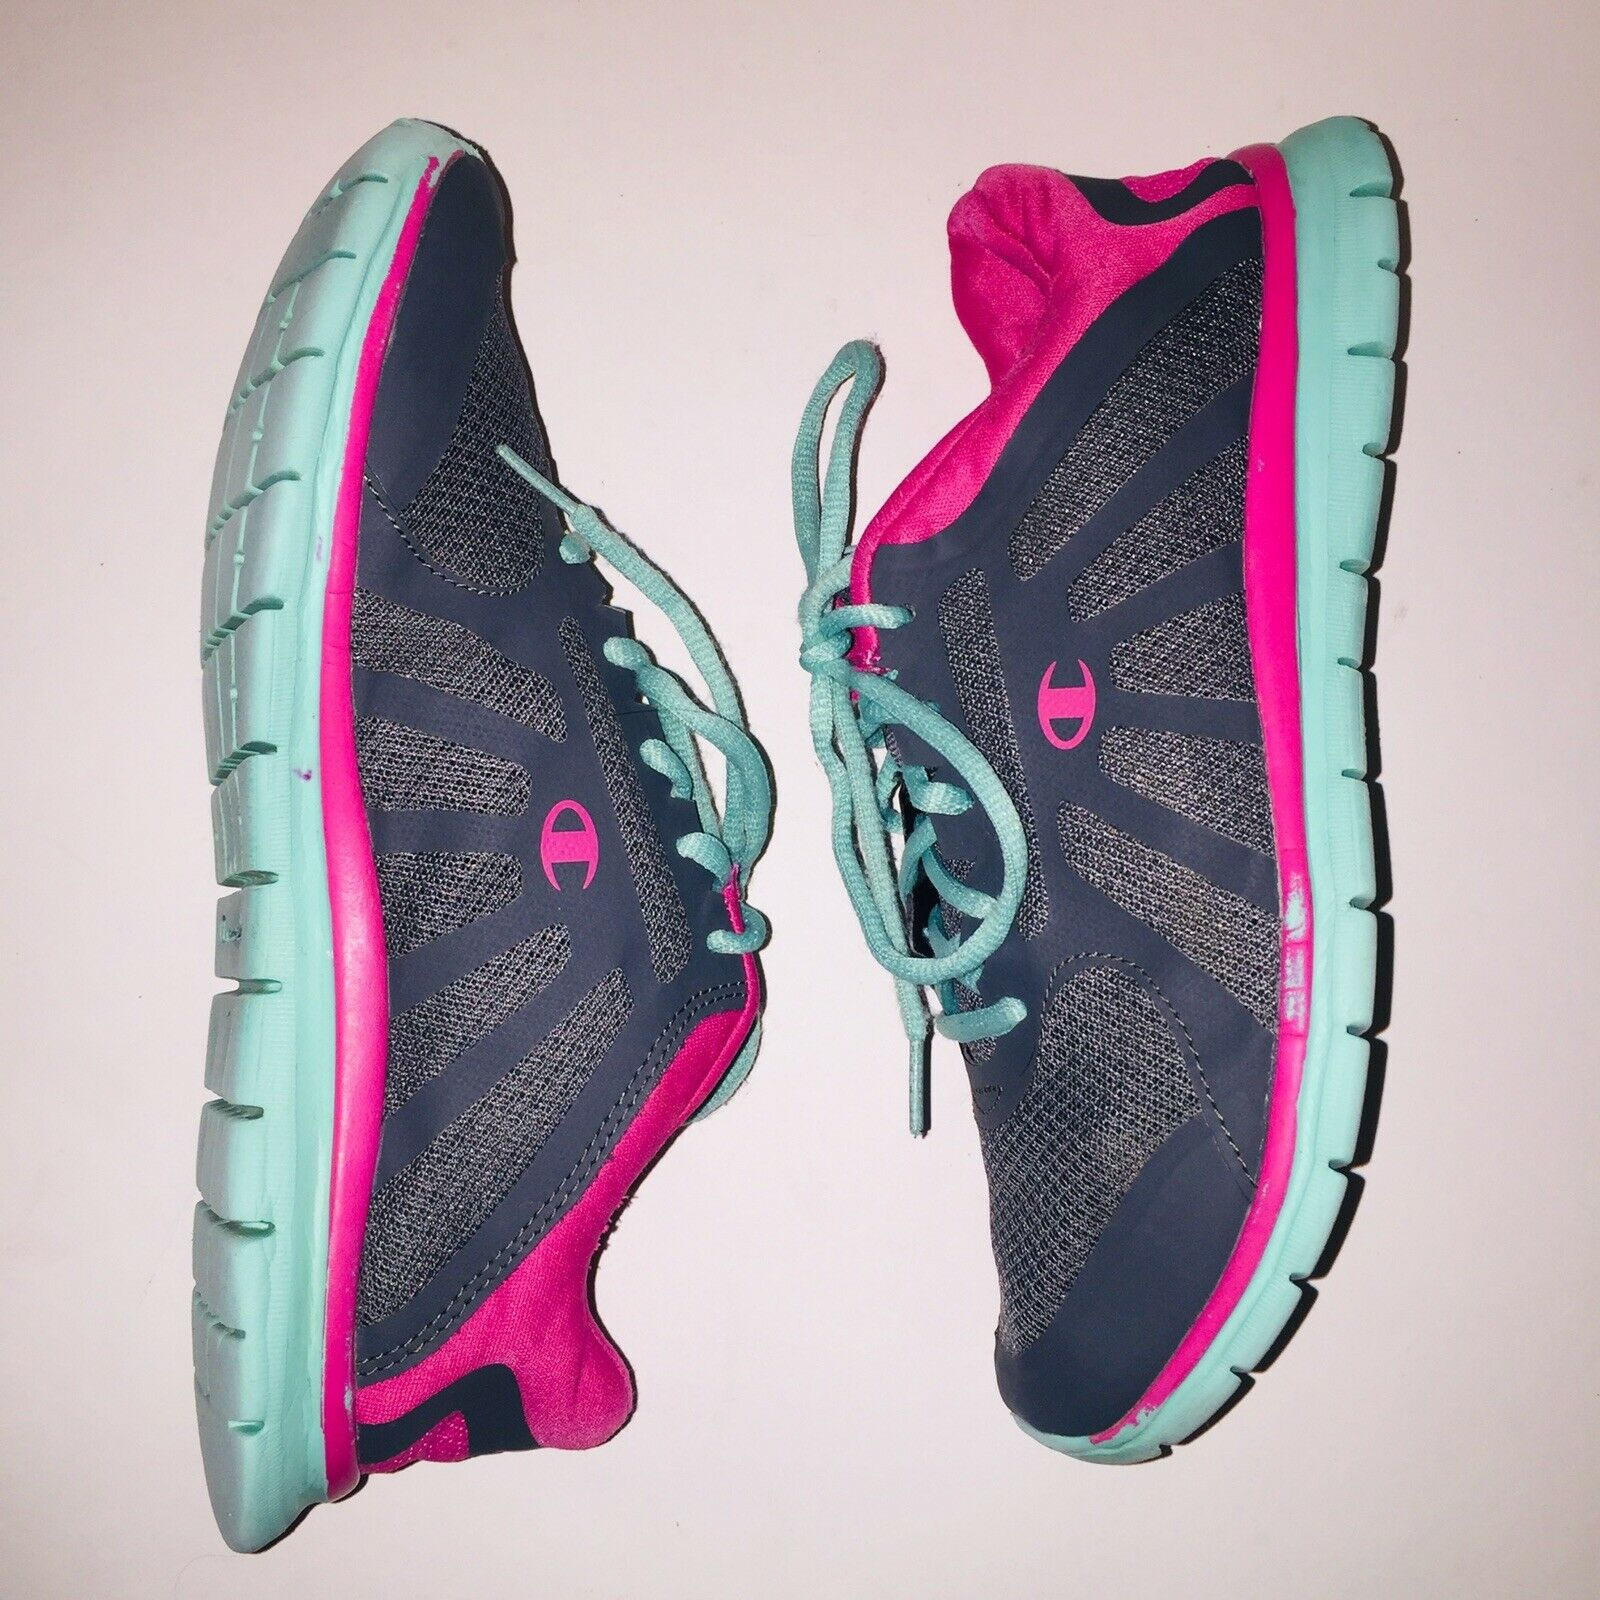 Champion Shoes 5 Womens Cross-fit Training Athletic Lightweight Teal Gray  Pink   eBay